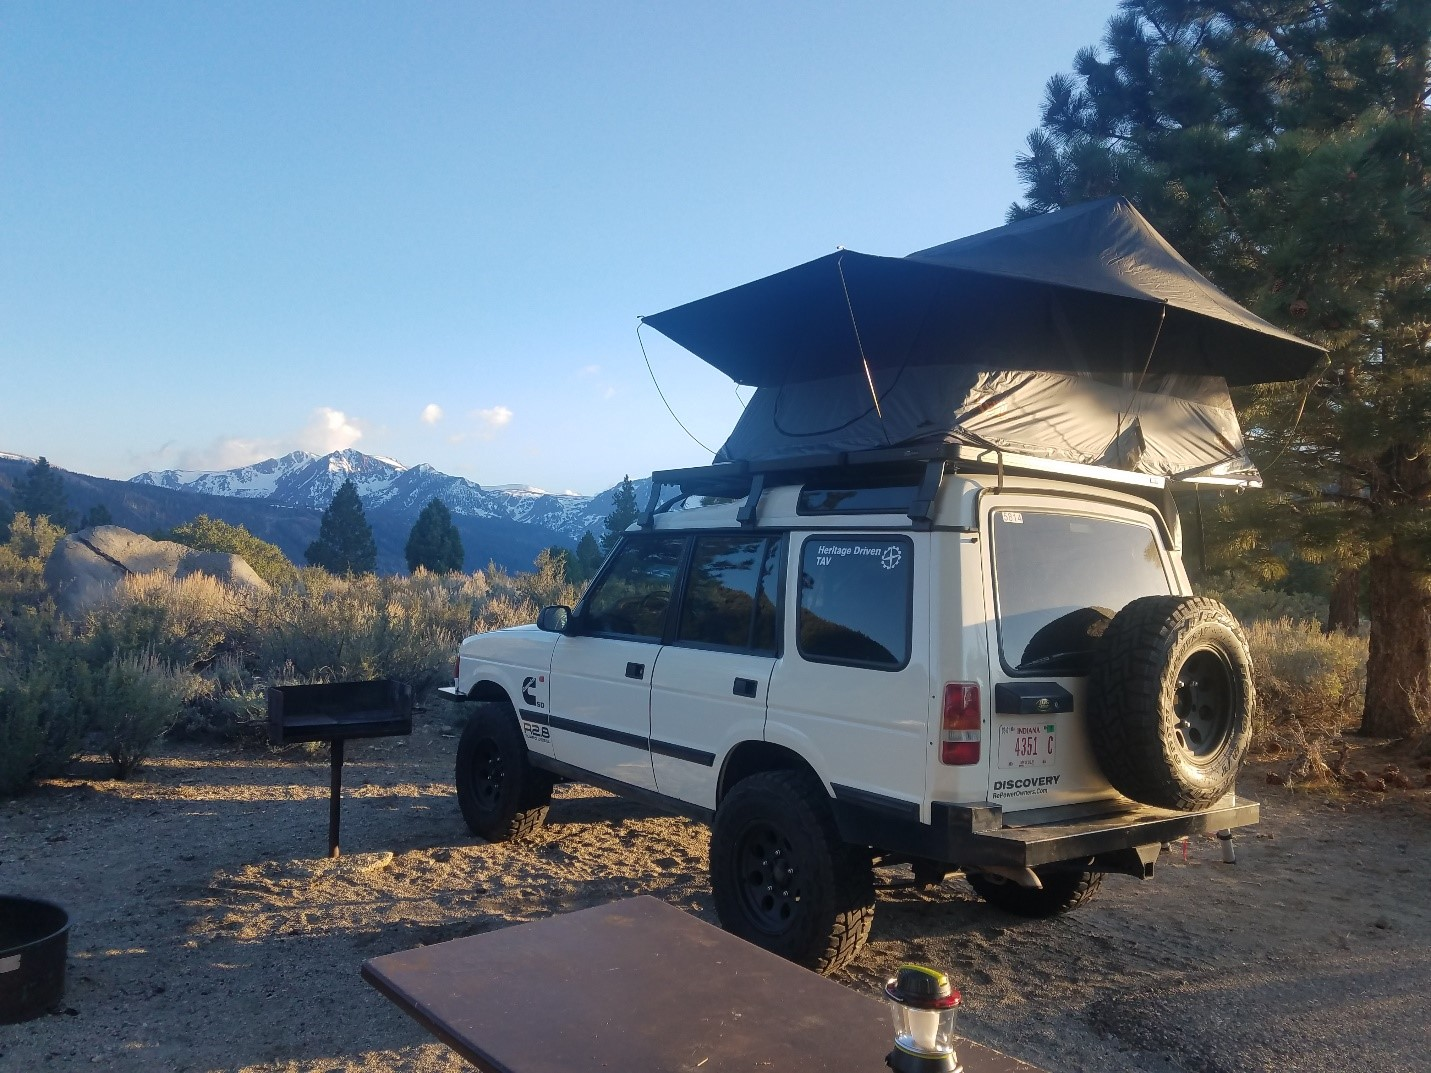 Top Rv Maintenance Tips From Cummins For Travel Season Inc 1988 Country Coach Wiring Diagram 12v Camp Was Set Up Overlooking A Mountain Lake At 8000 Ft Elevation Which Made Chilly Nights Sleep But Some Amazing Views In The Morning